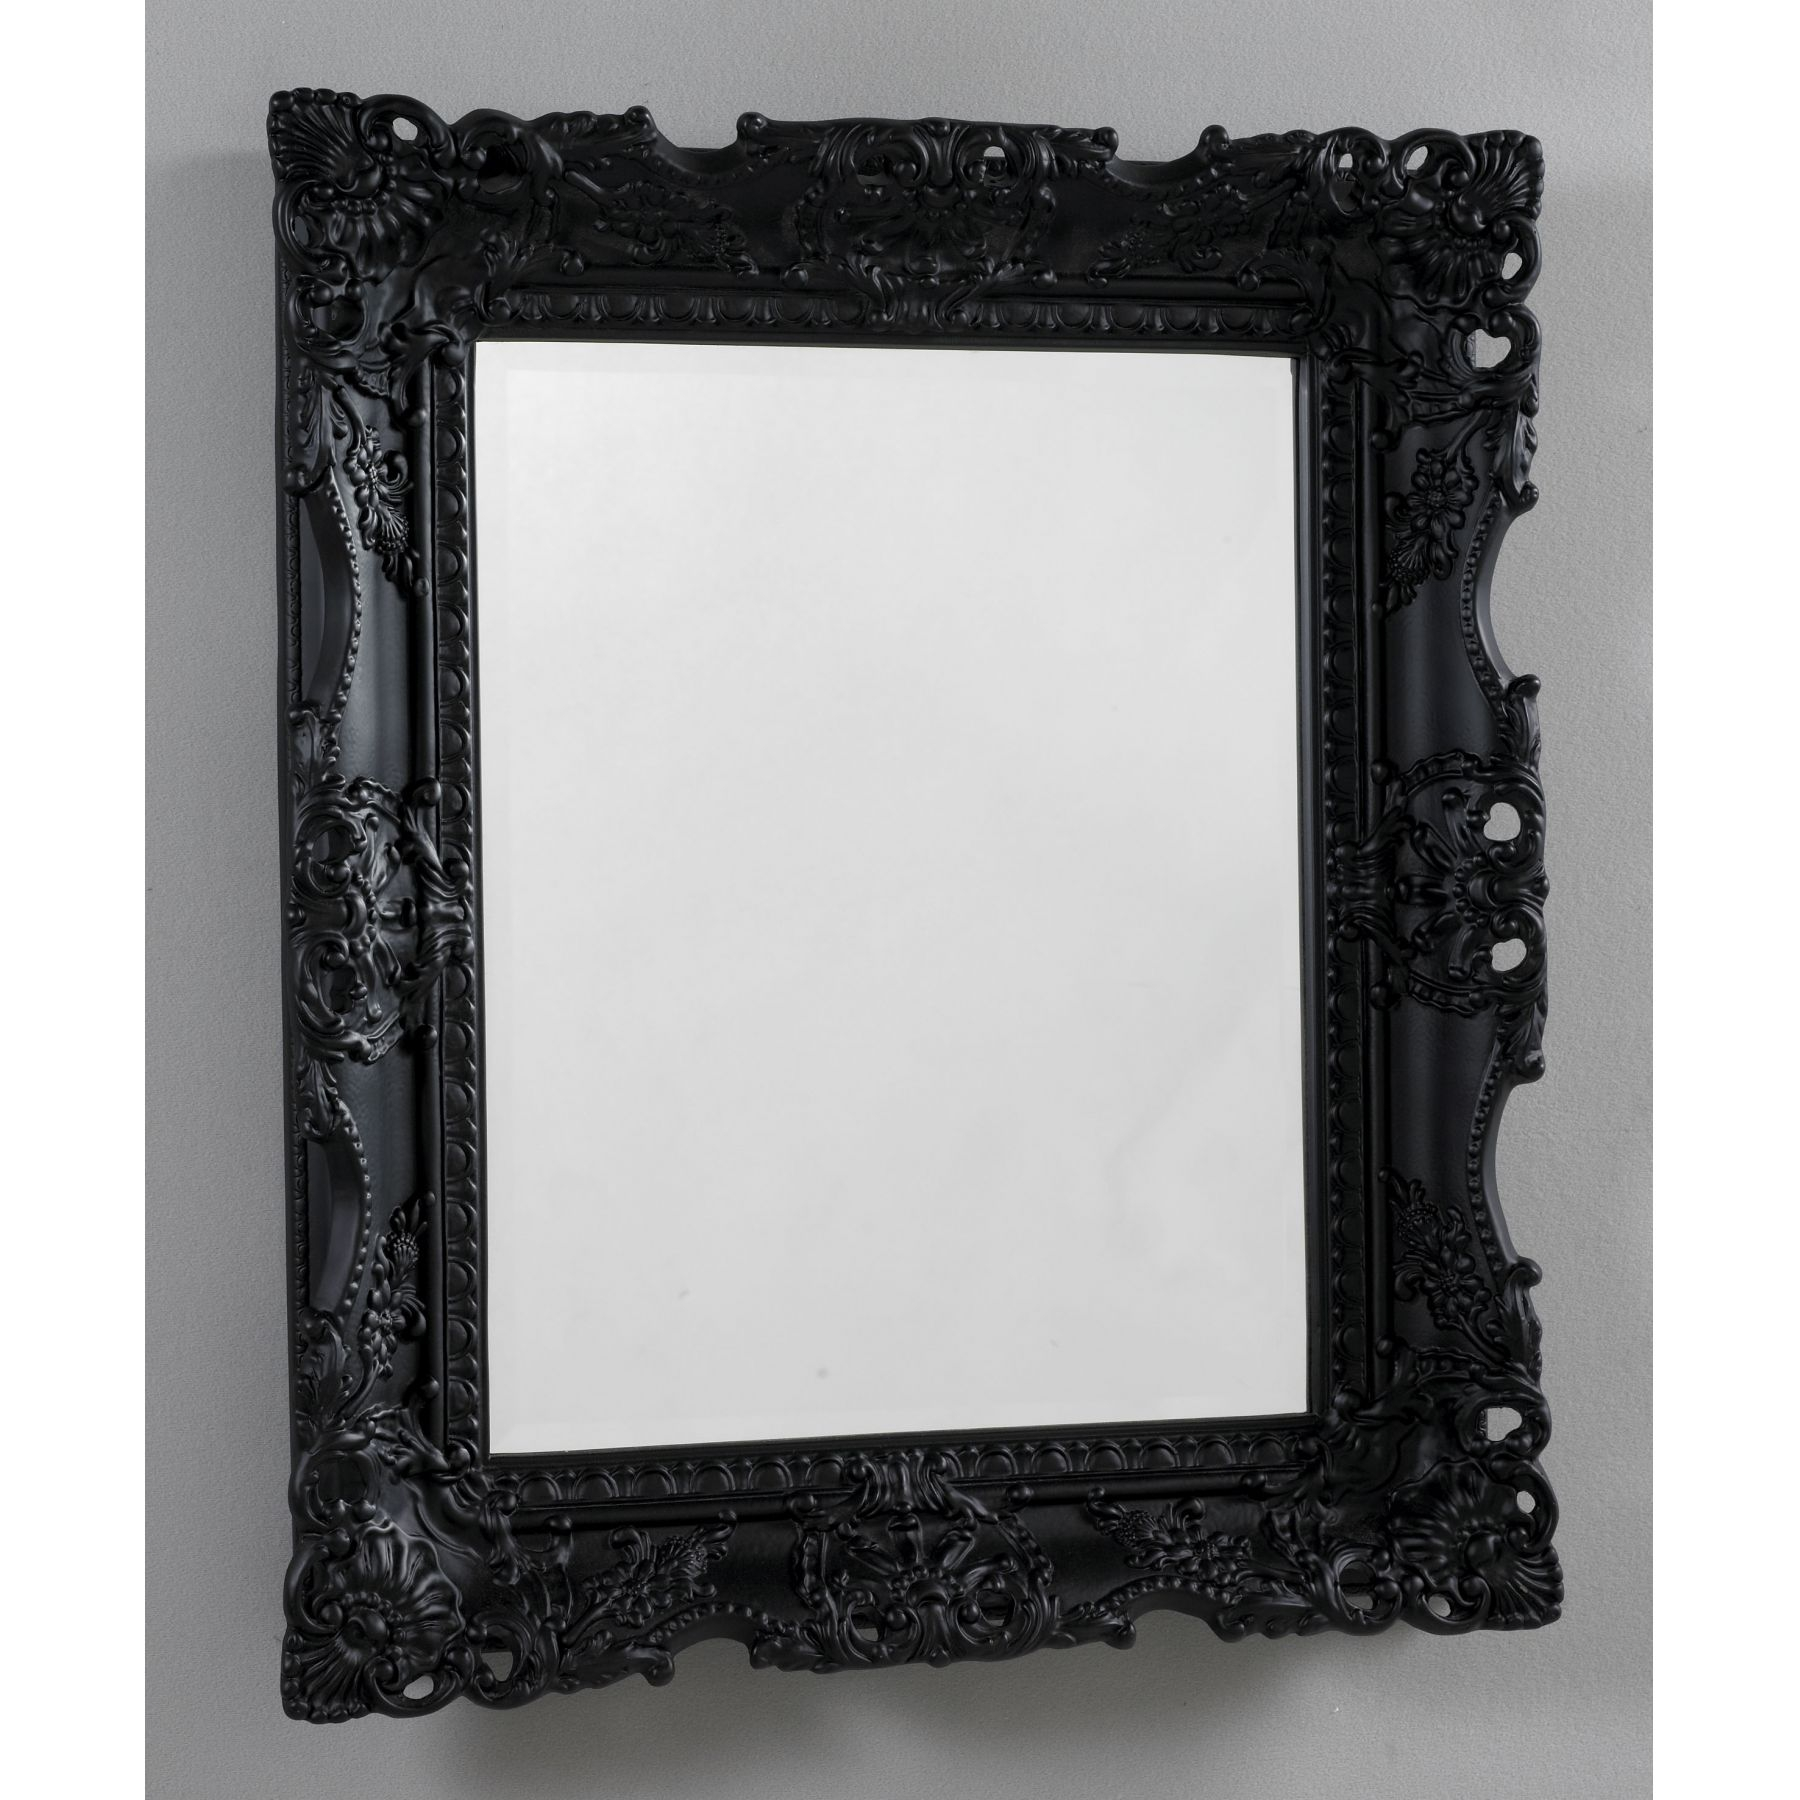 Home Decor Antique French Black Mirror Black Mirror Home Decor With Regard To Black Vintage Mirror (Image 5 of 15)